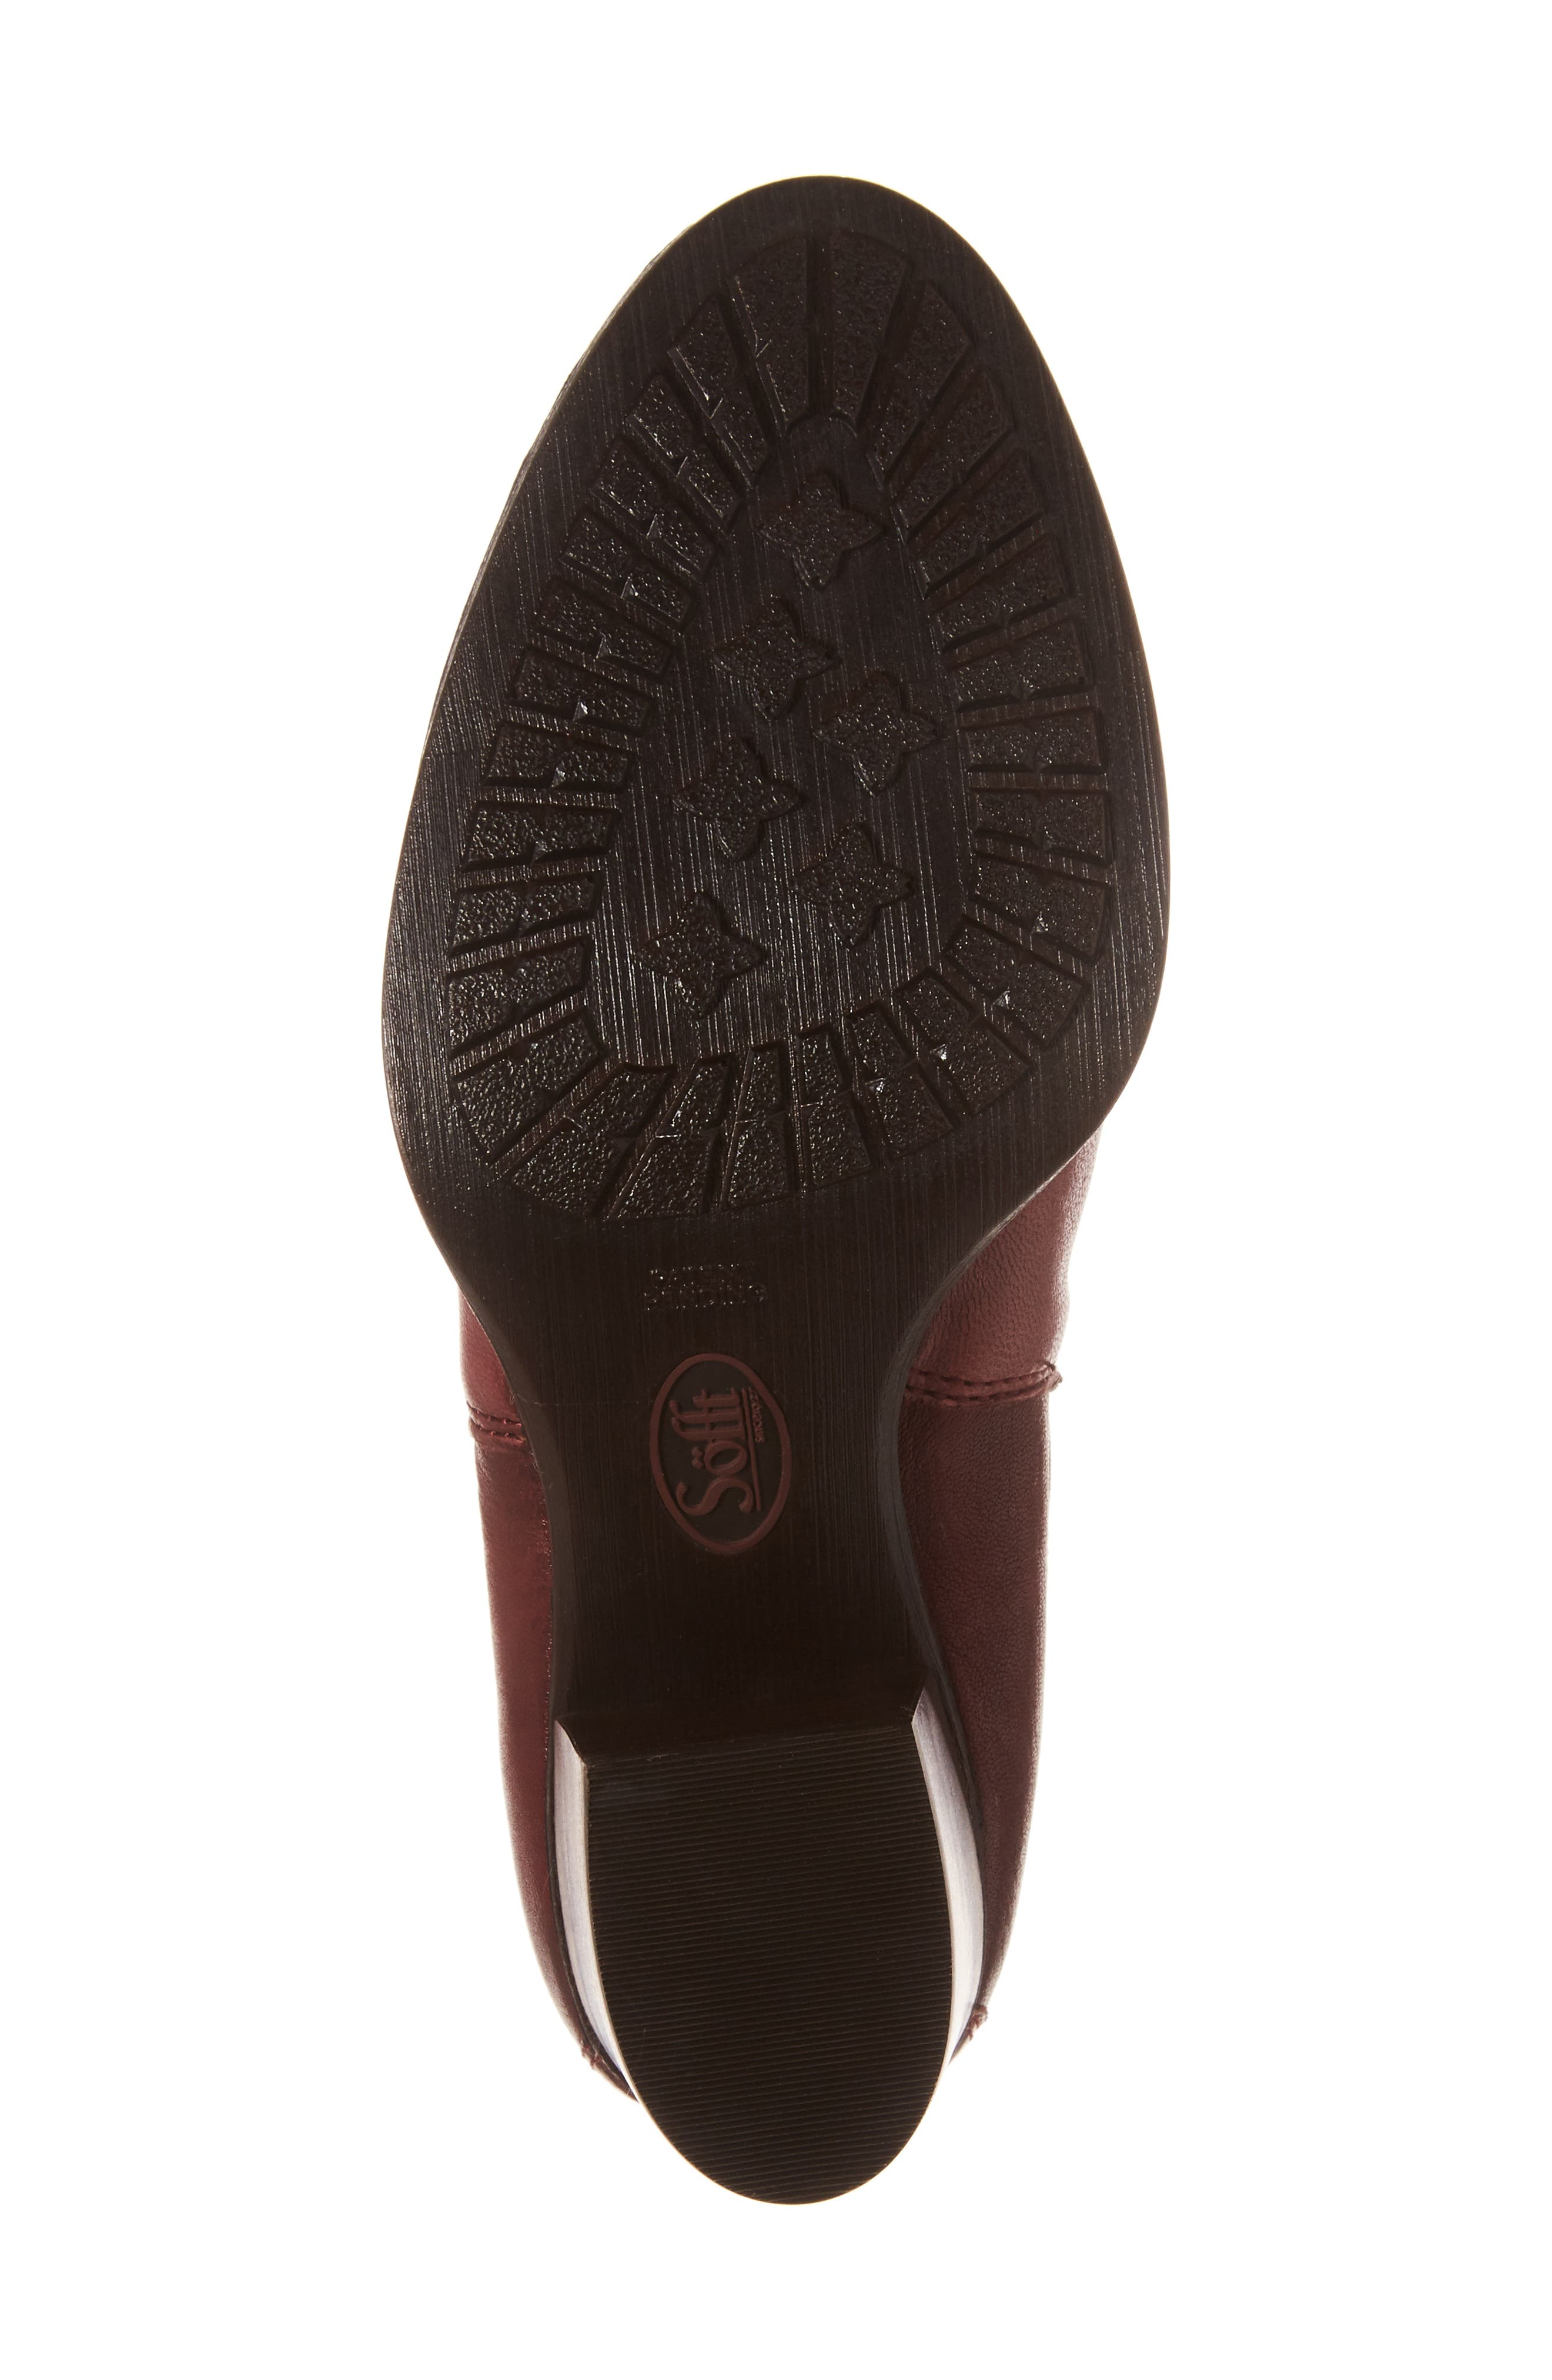 Welling Bootie,                             Alternate thumbnail 6, color,                             Wine Red Leather